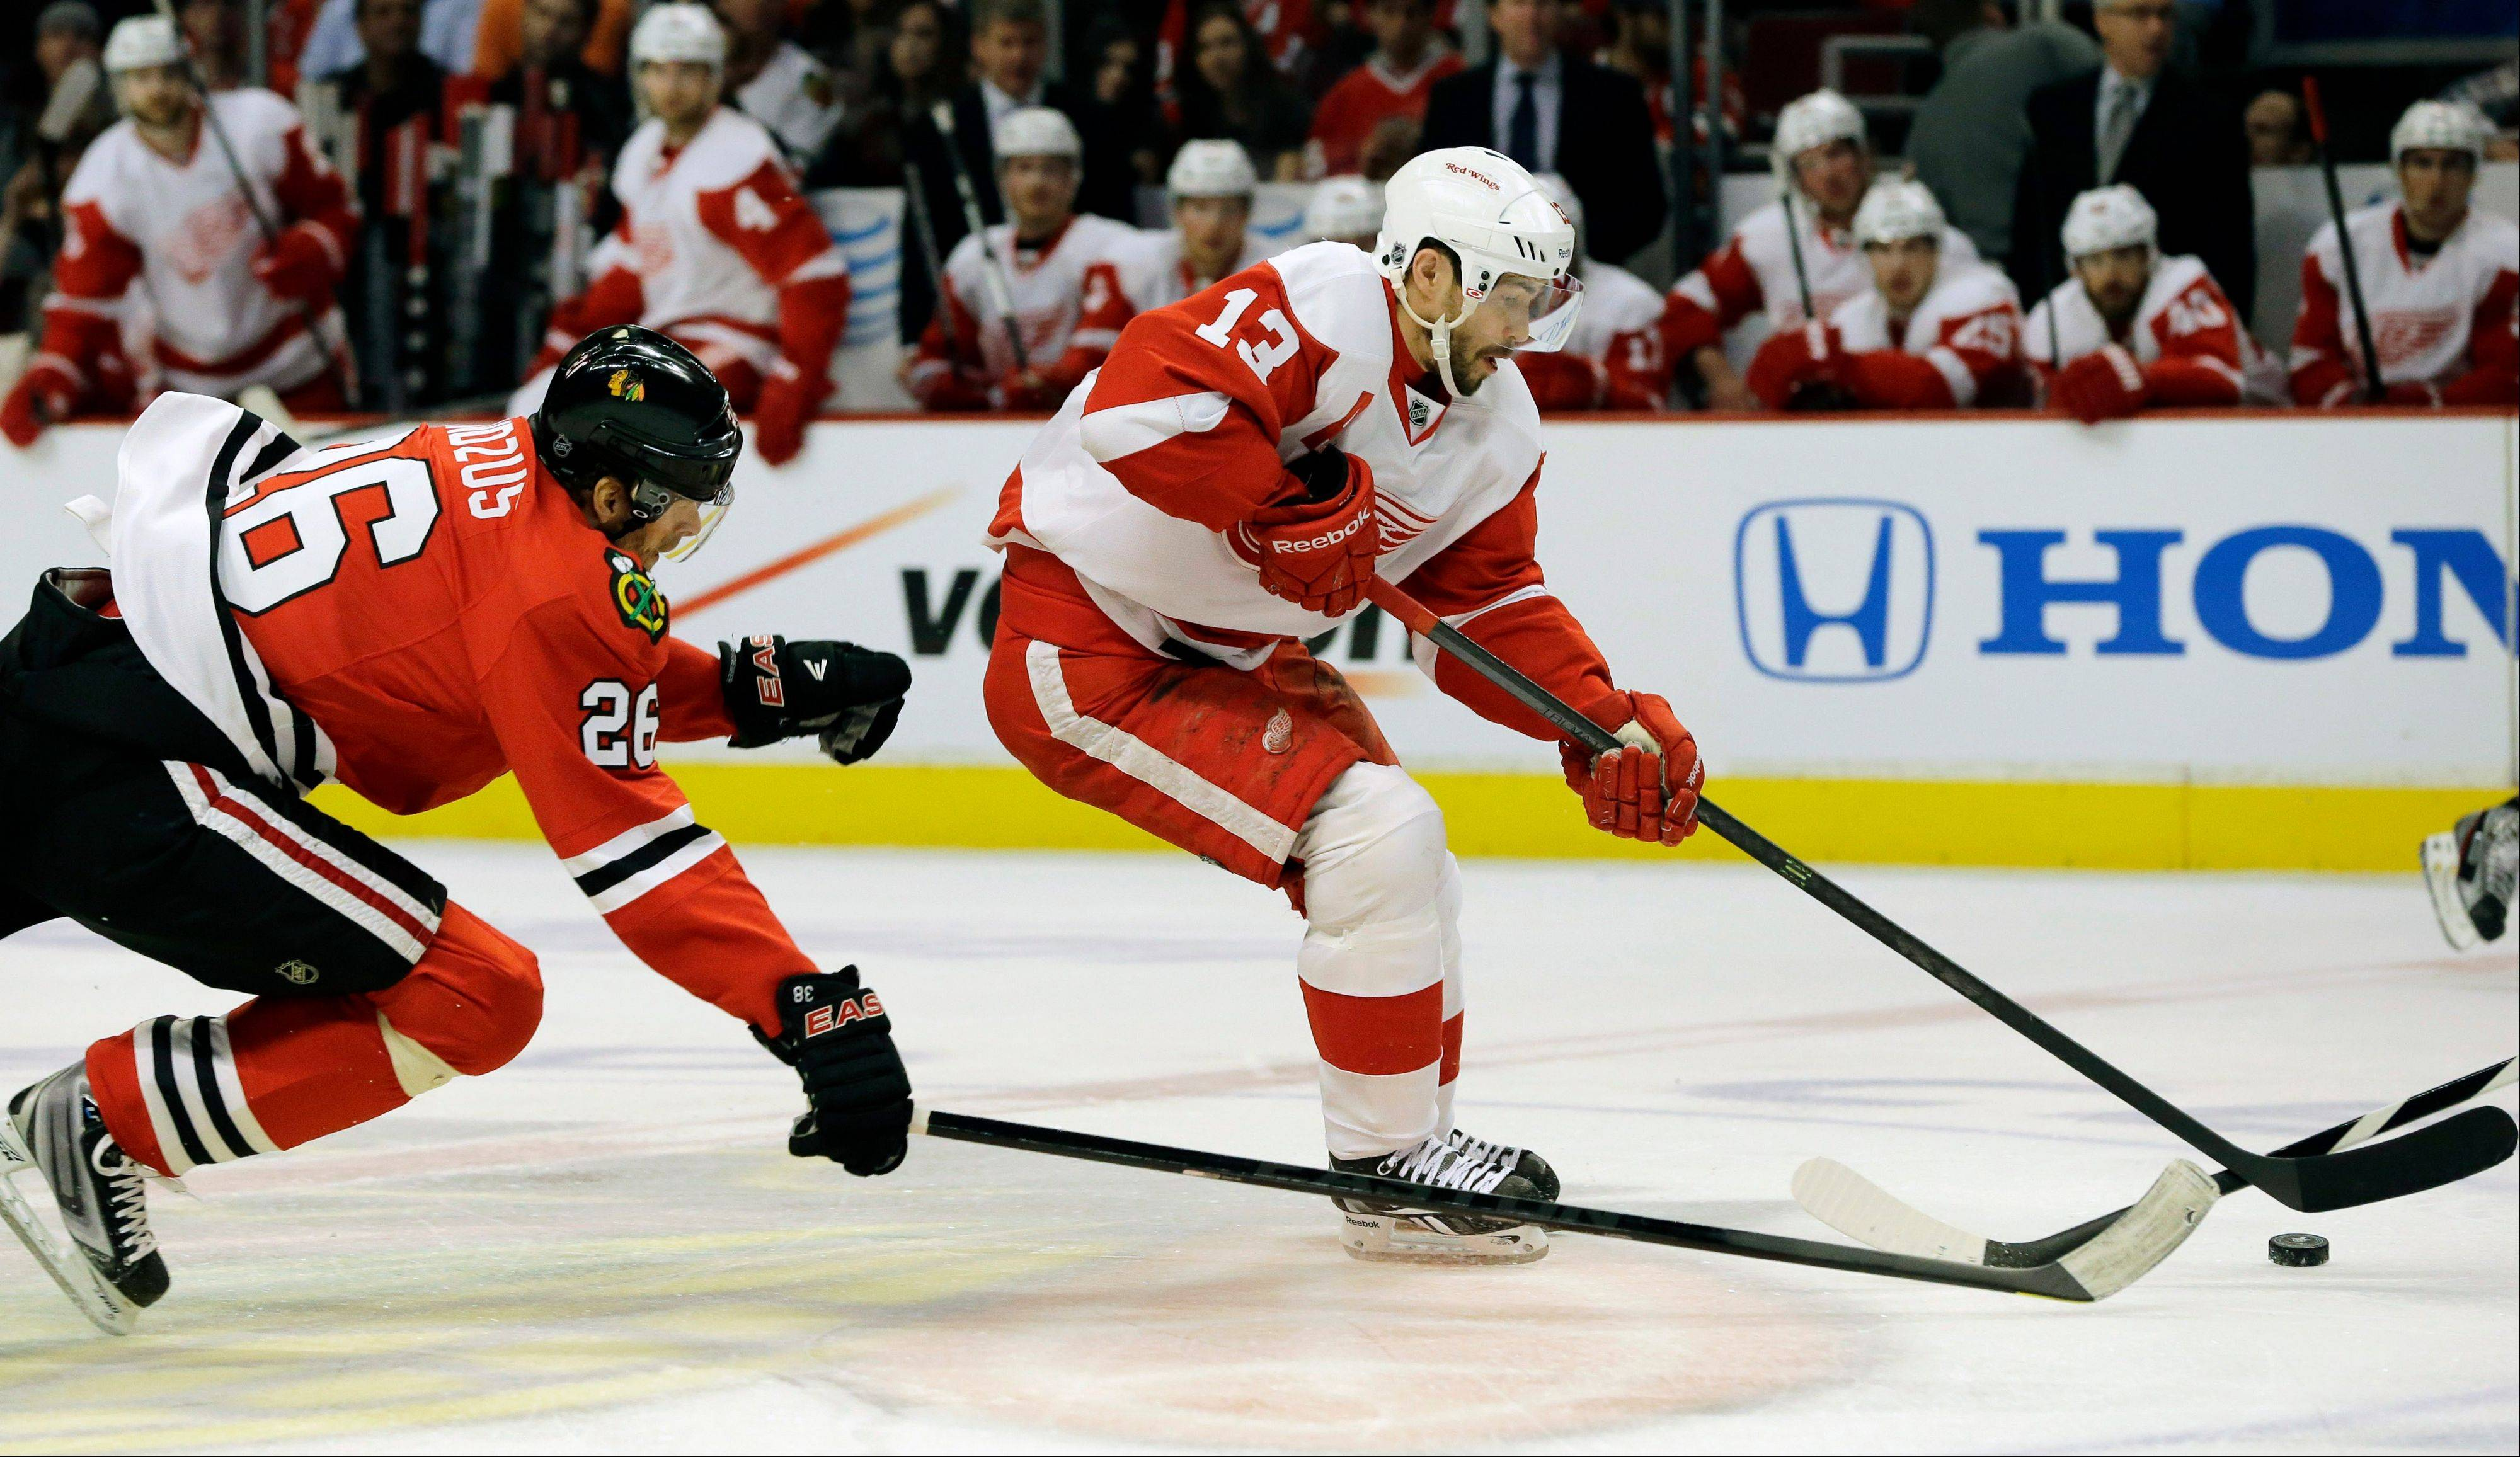 The Red Wings' Pavel Datsyuk, here controlling the puck past Michal Handzus, remains very much on the minds of the Blackhawks.